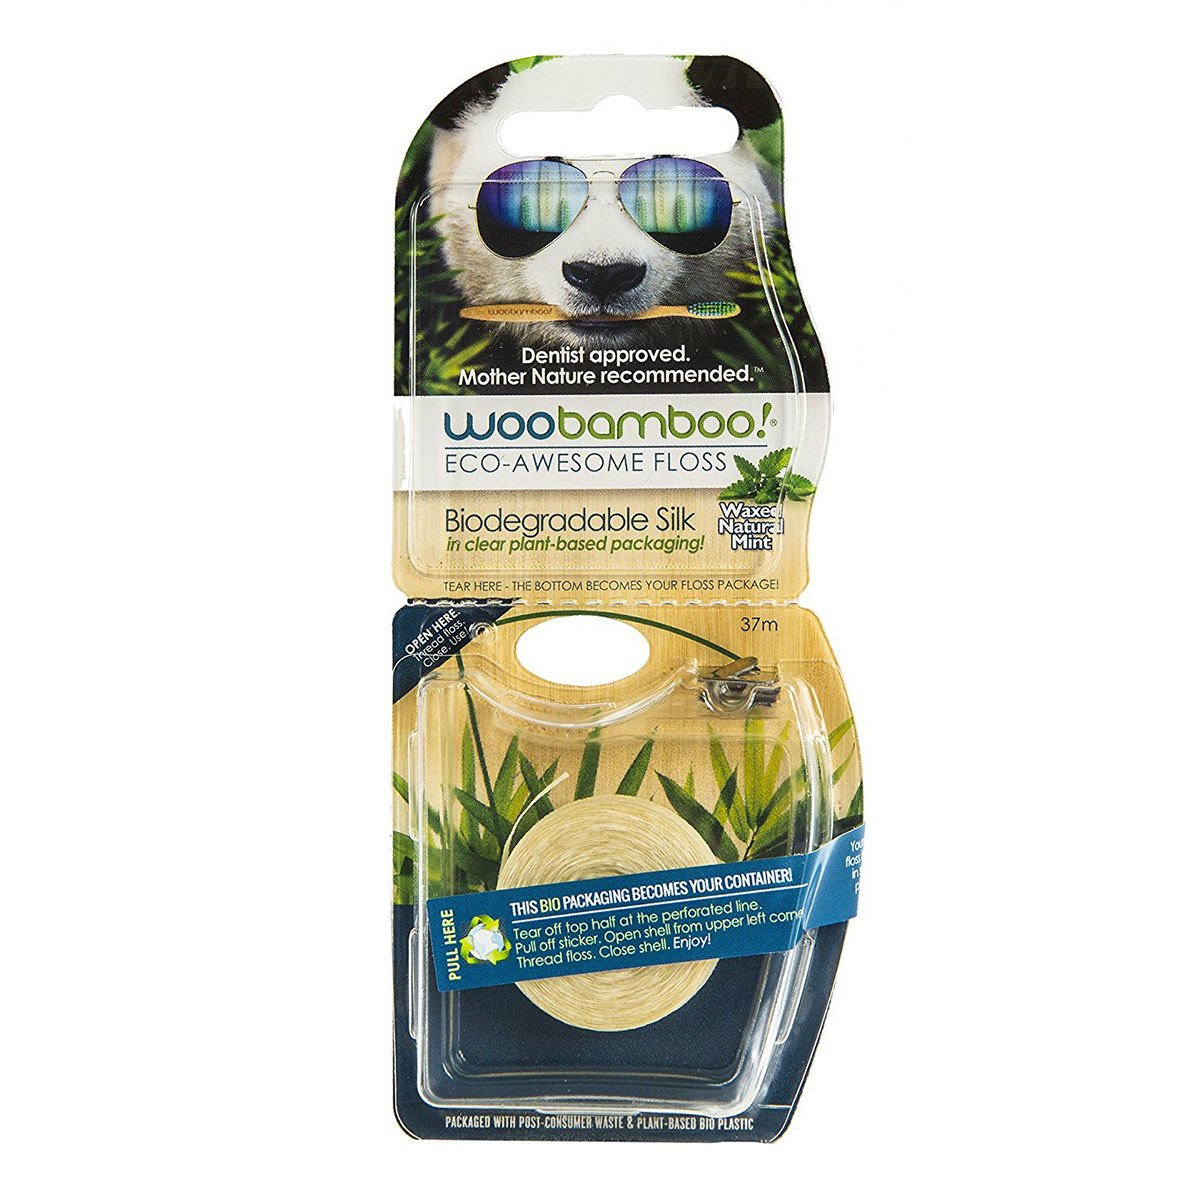 WooBamboo - Eco-Awesome Floss Natural Mint 200 Floss M